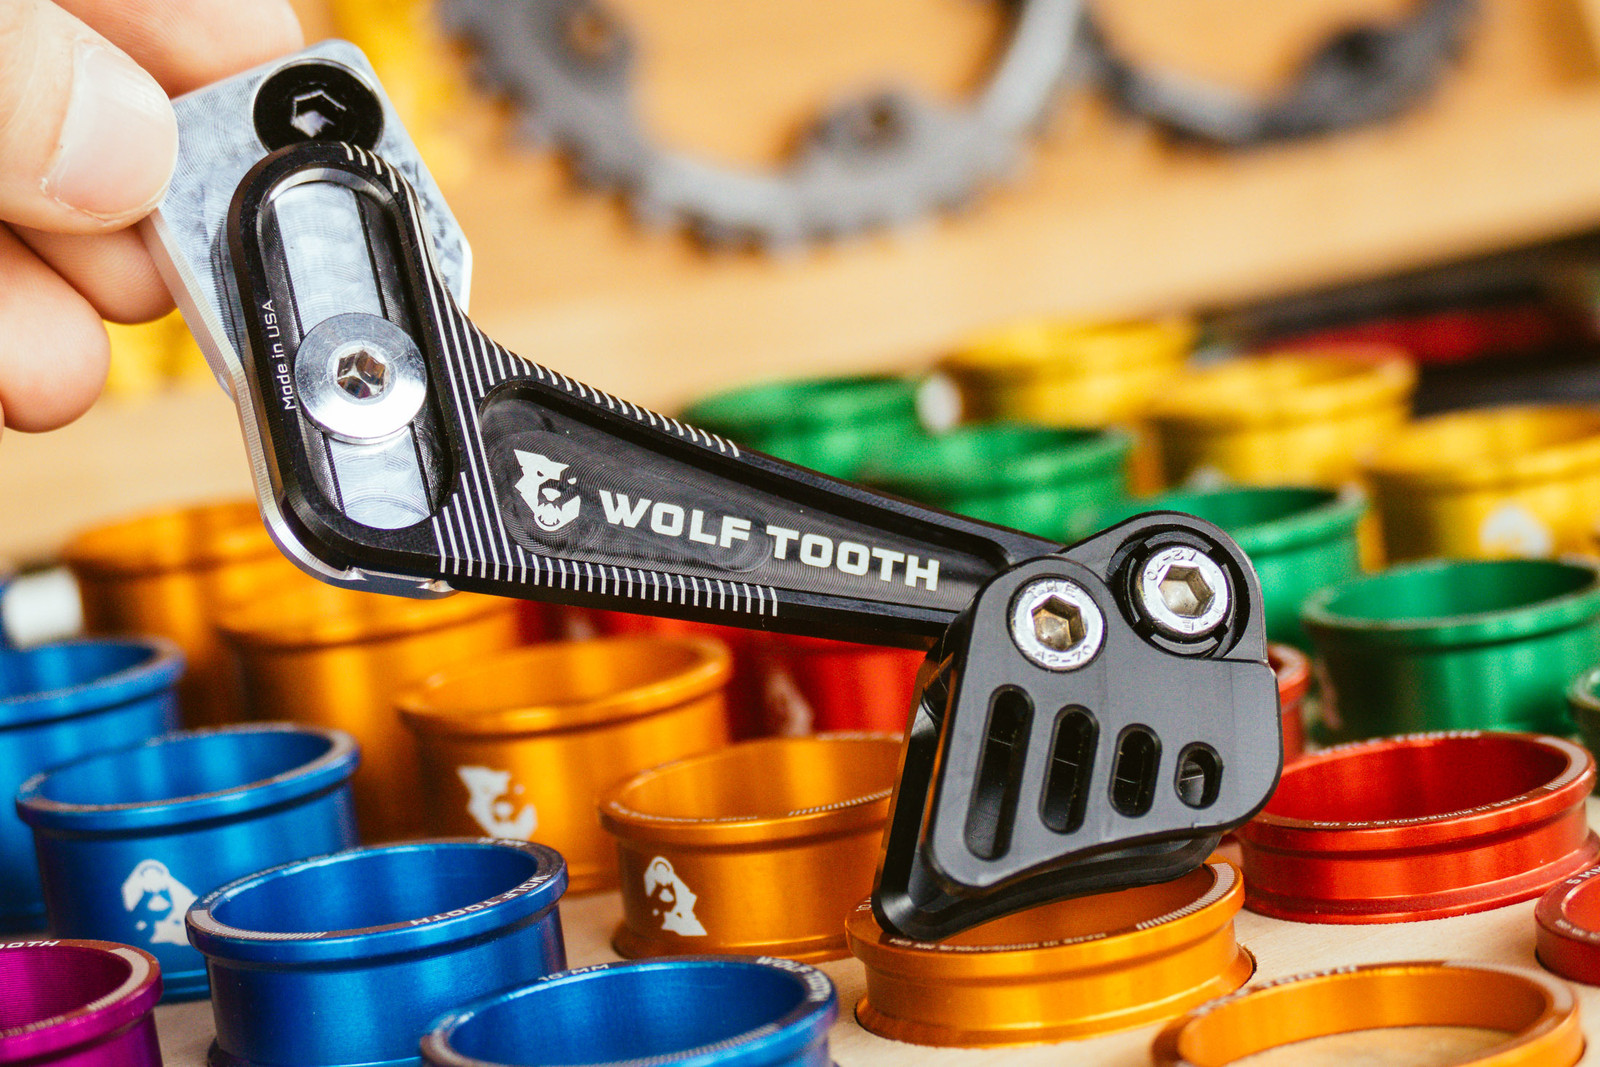 Fresh Goods from Wolf Tooth Components - PIT BITS - Fresh Products from the Sedona Mountain Bike Festival - Mountain Biking Pictures - Vital MTB